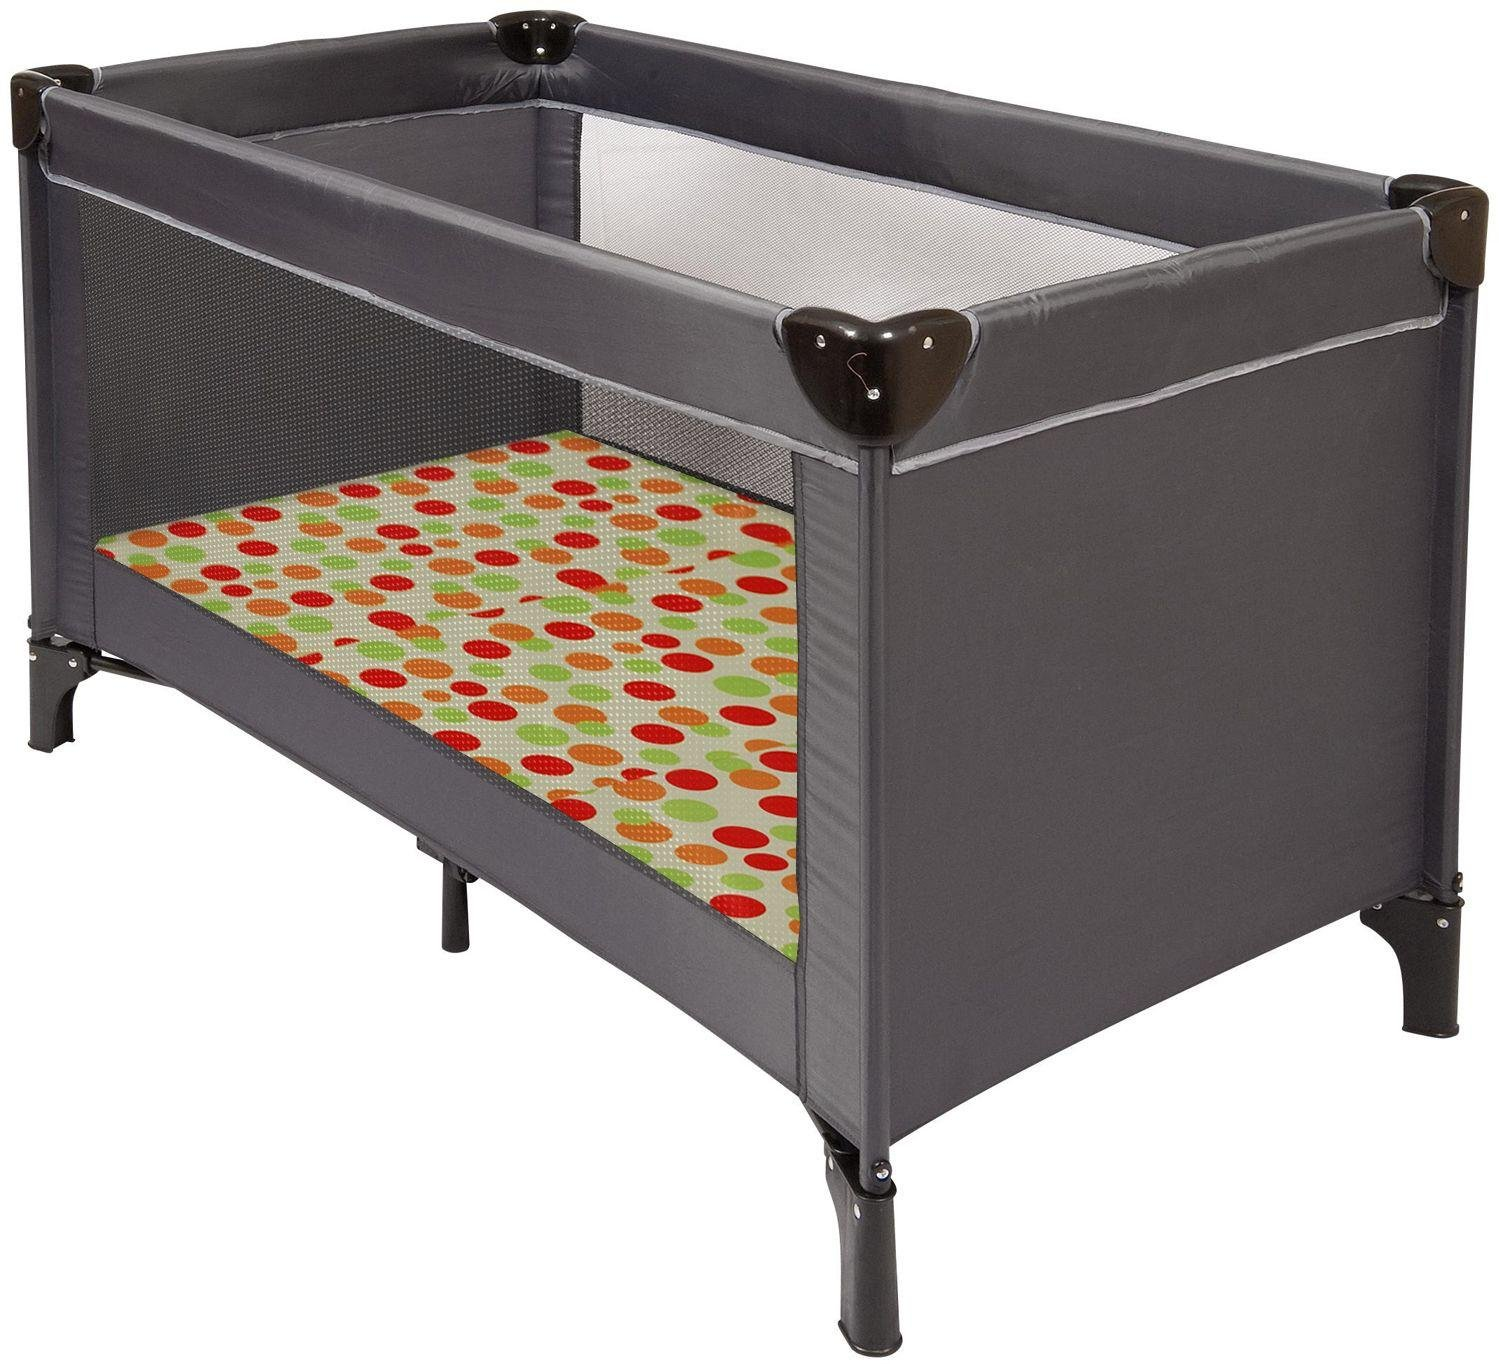 Image of Clevamama - 3 in 1 Sleep, Sit and Play - Travel - Cot - Mattress